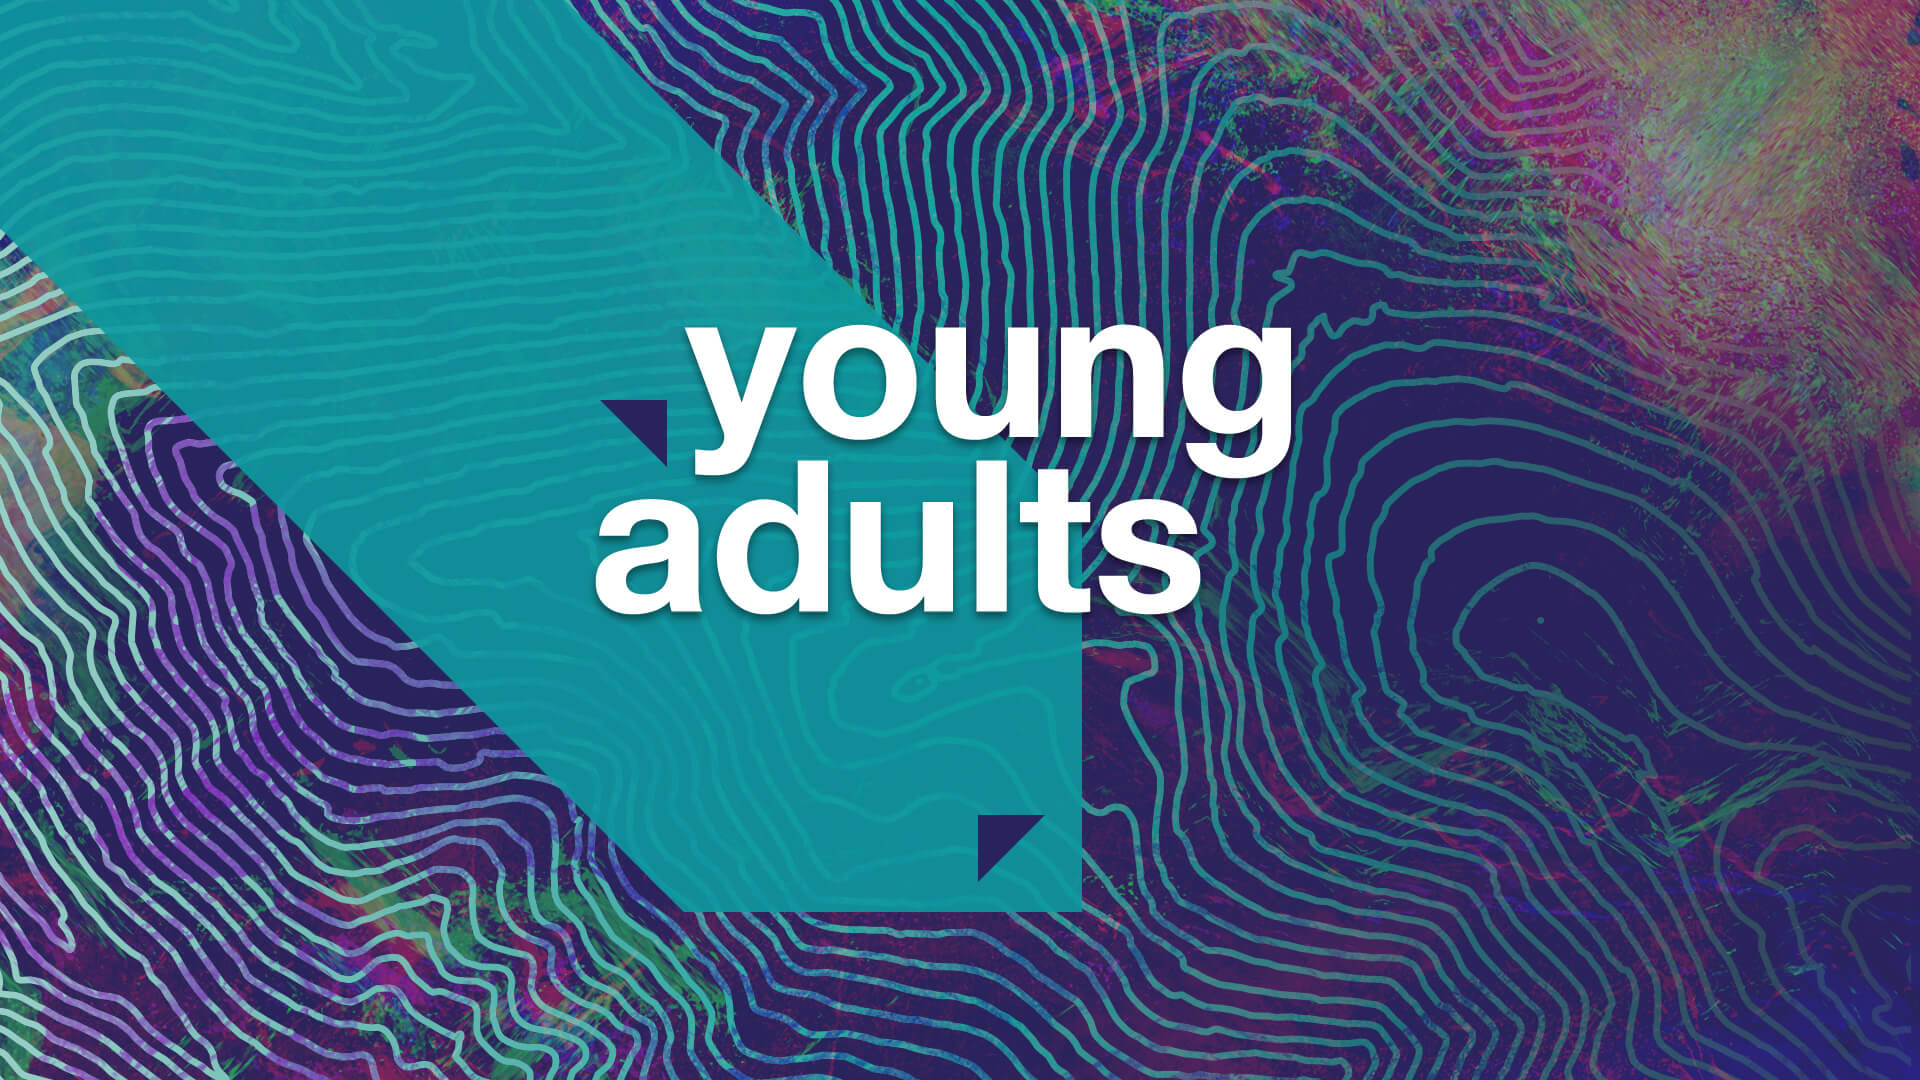 Springs Young Adults